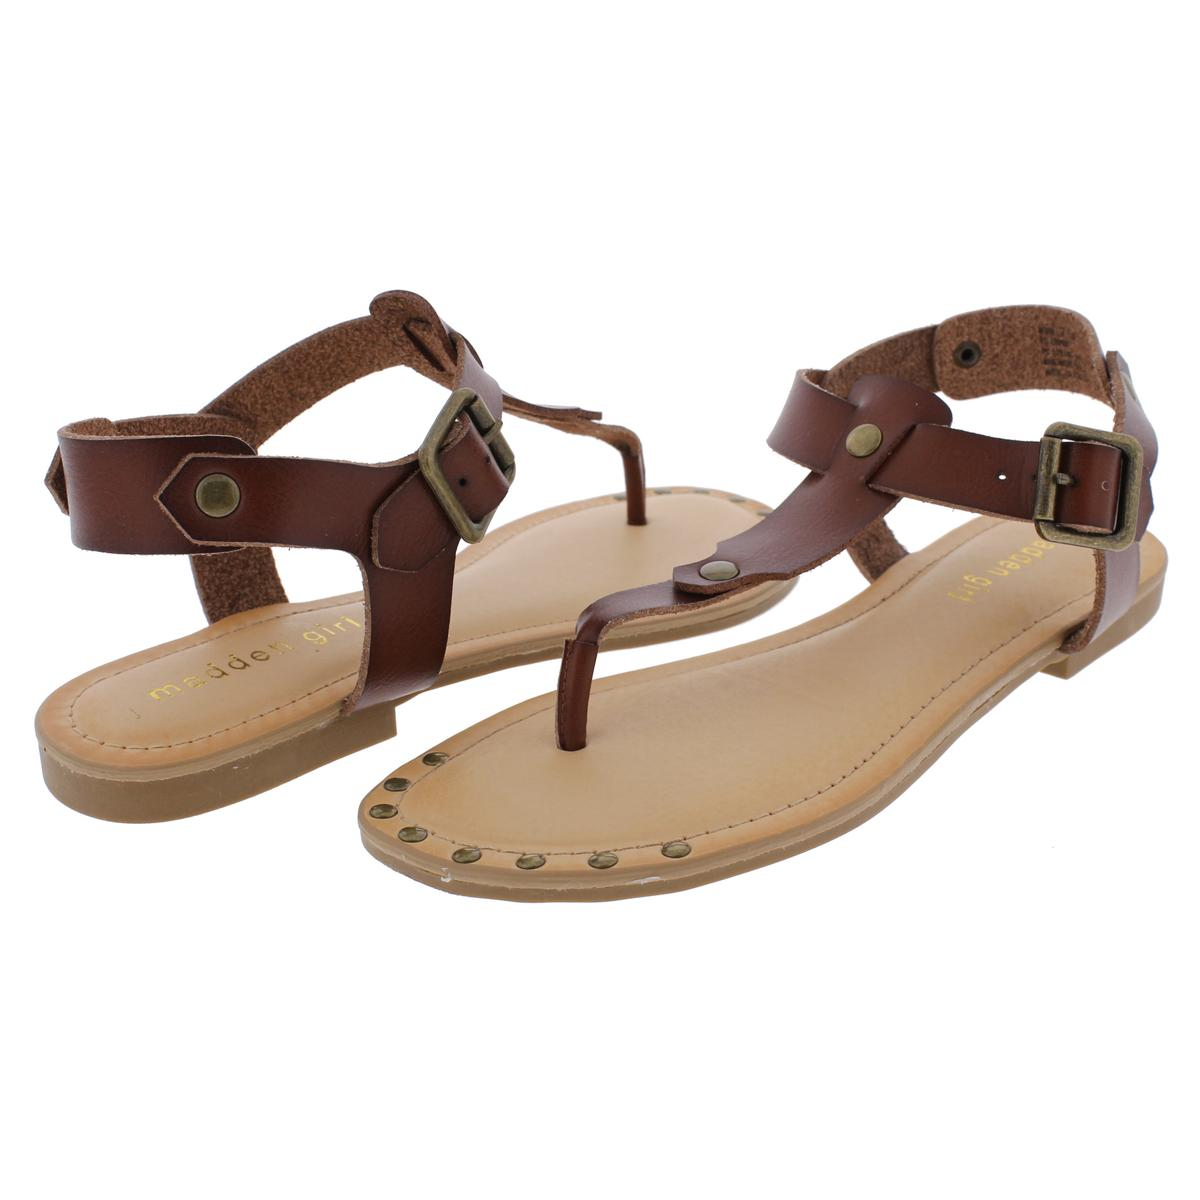 Madden-Girl-by-Steve-Madden-Womens-Mona-Studded-T-Strap-Sandals-Shoes-BHFO-9554 thumbnail 7